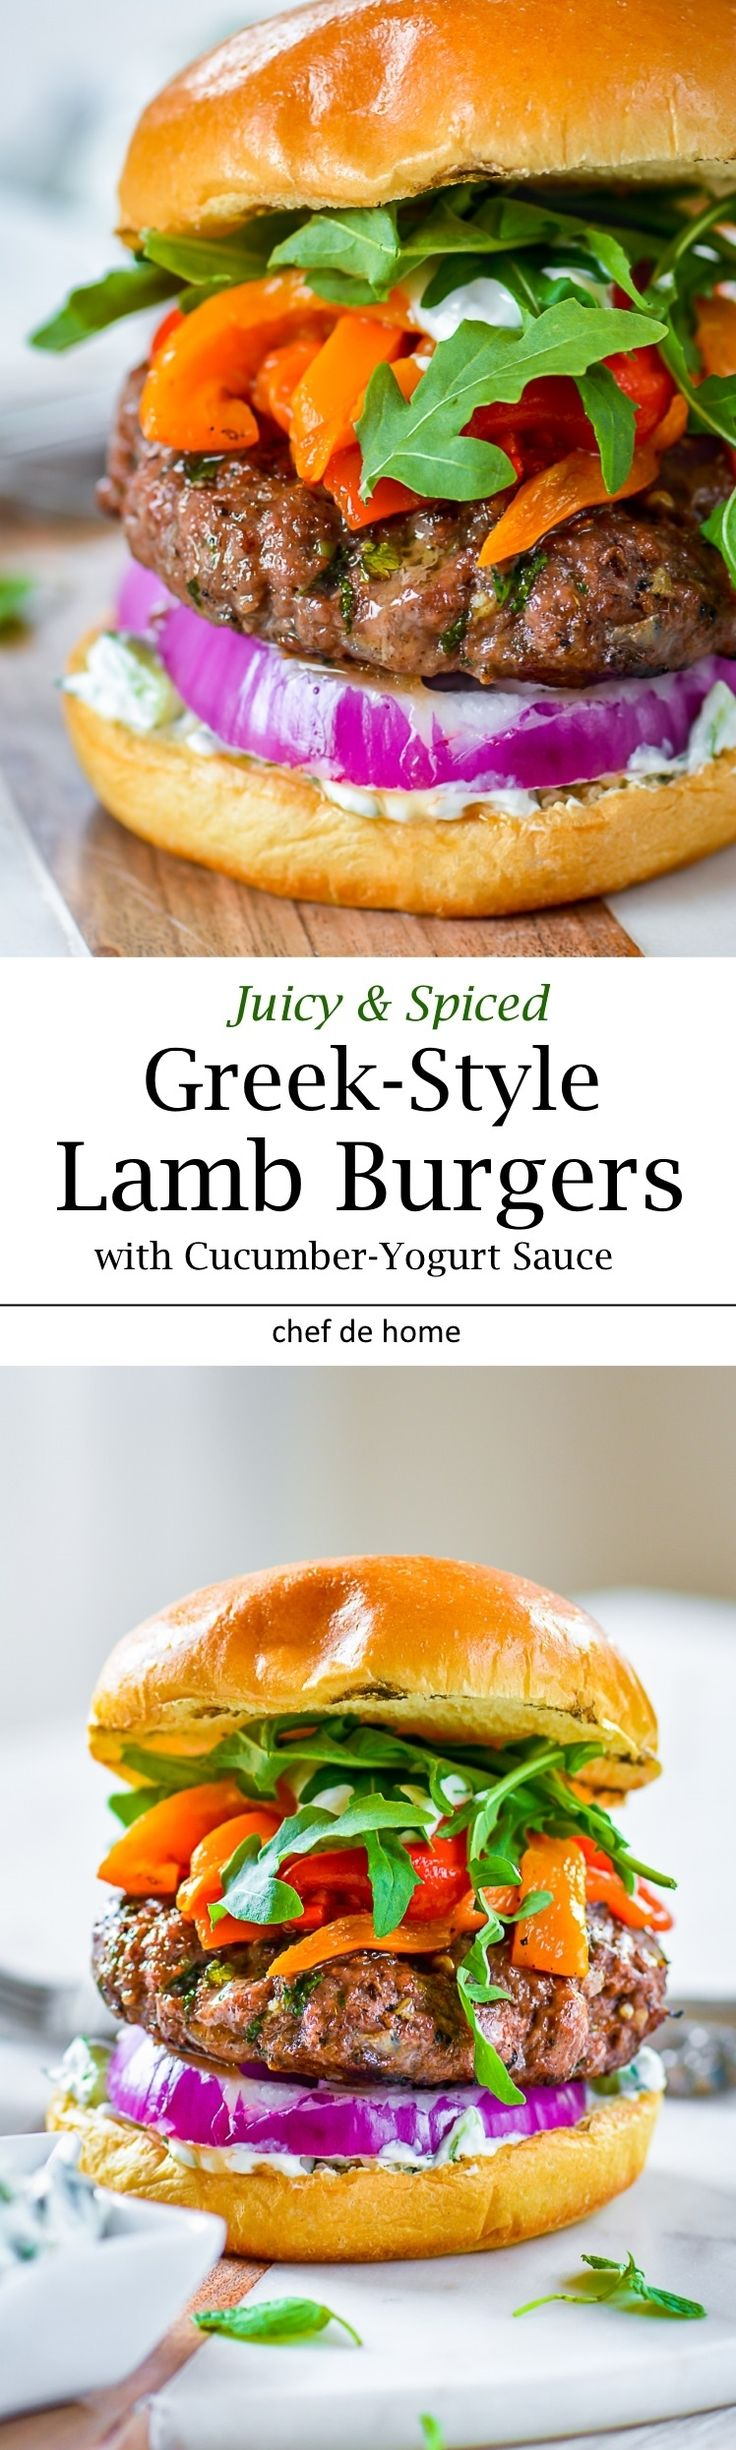 Greek Mint and Lamb Burgers with roasted red peppers, and Cucumber Yogurt Sauce